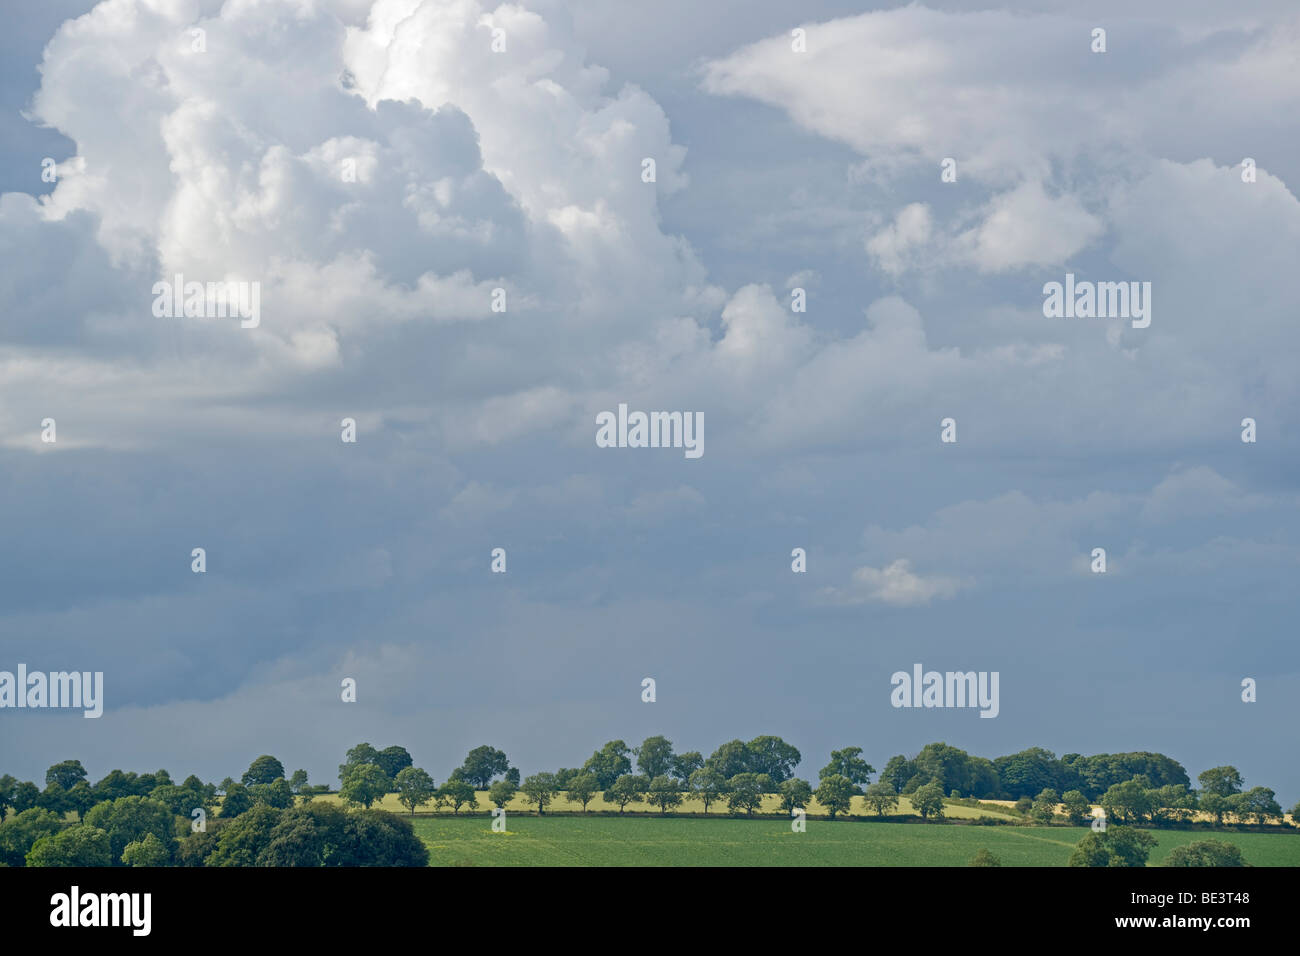 Skyscape, skyline, near Chipping Campden, Gloucestershire, Cotswolds, England, July, 2009 - Stock Image